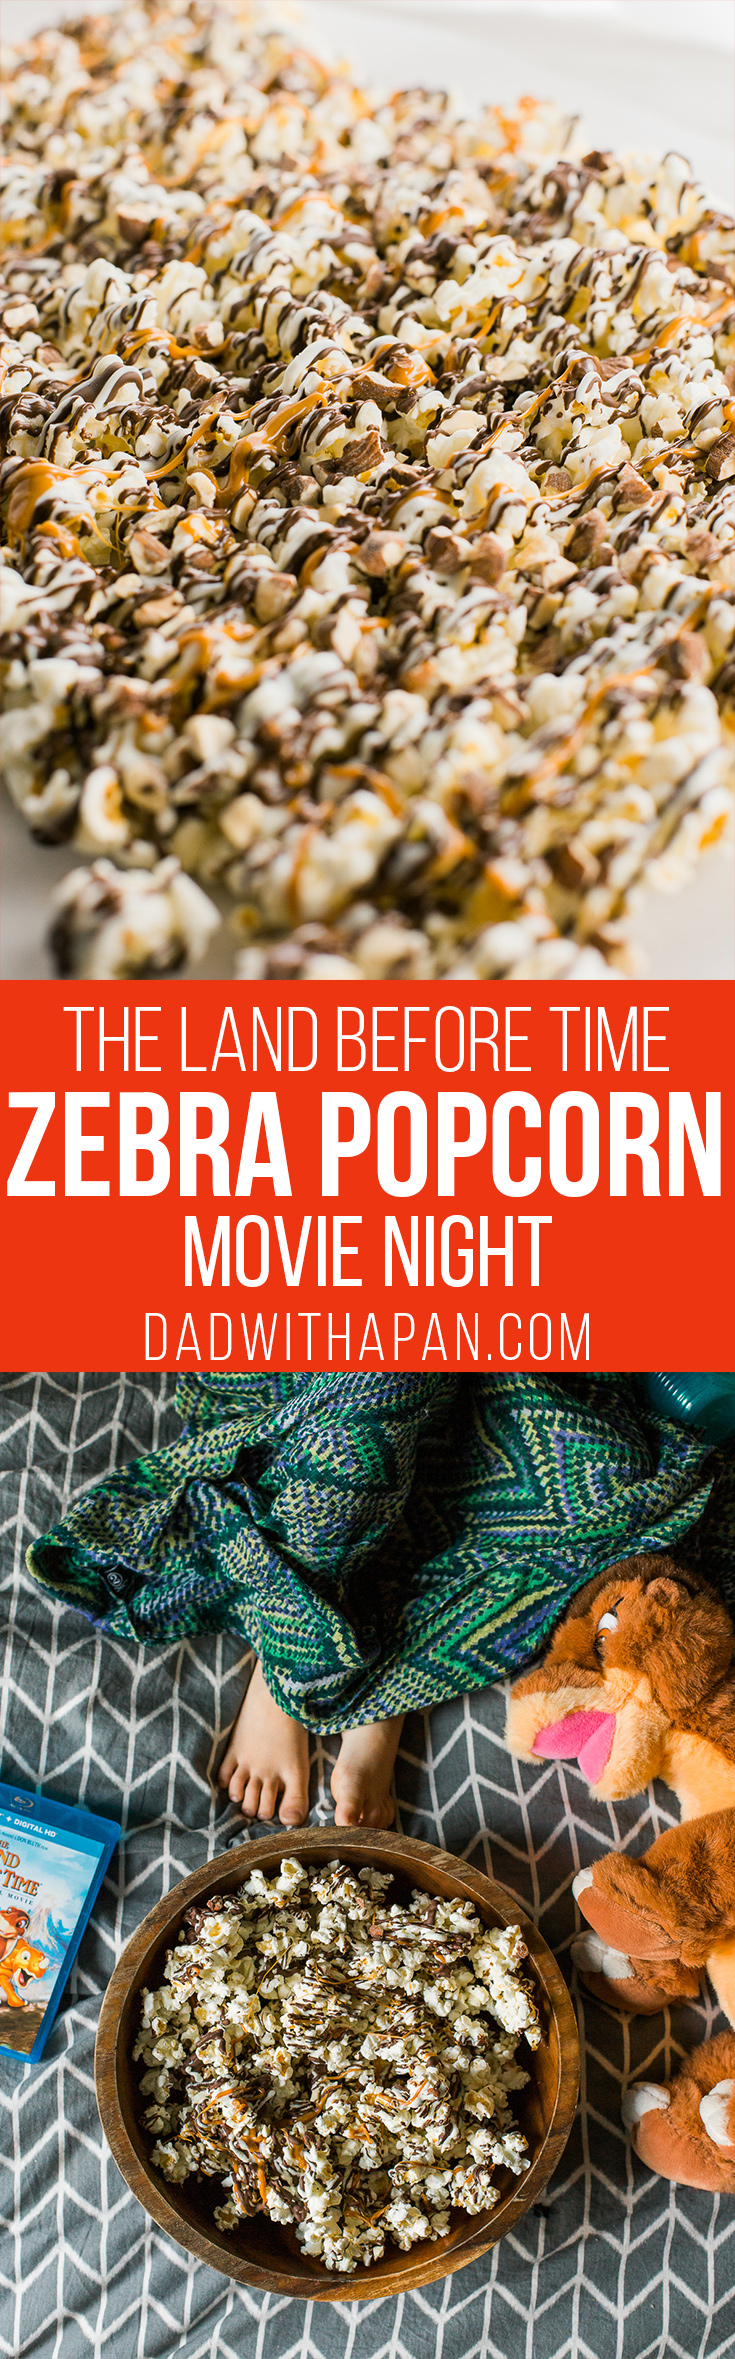 Zebra Popcorn recipe made a perfect companion for our Land Before Time Movie night! Drizzled with dark and white chocolate, caramel and chopped almonds!